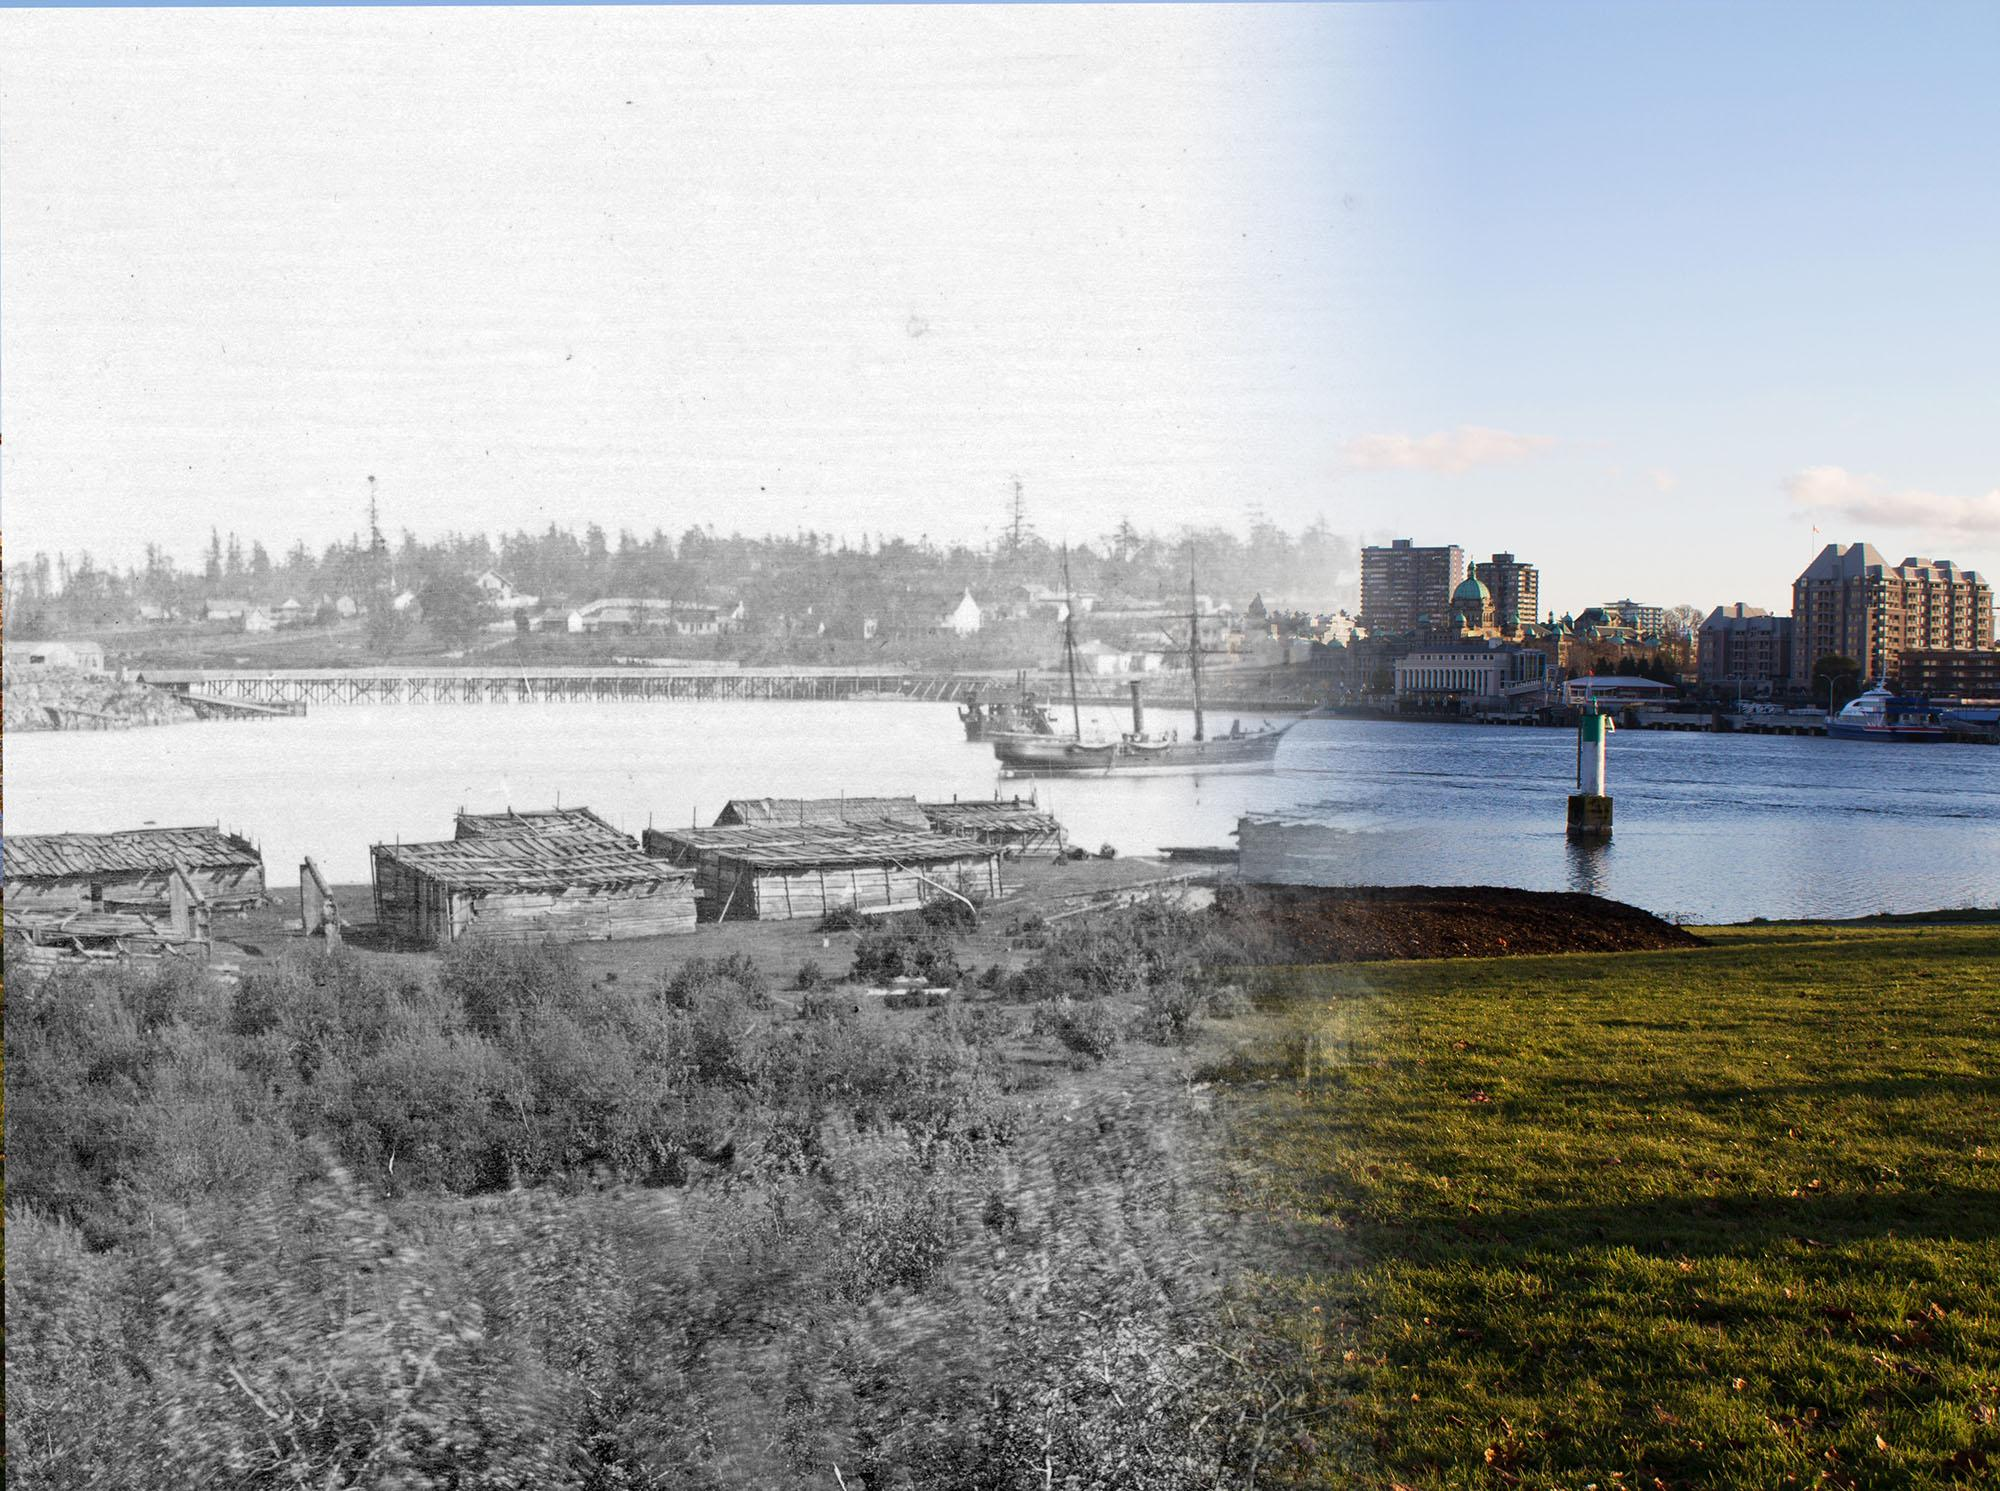 The homes of the Songhees First Nation in Victoria's Inner Harbour (Vancouver Archives/On this Spot)